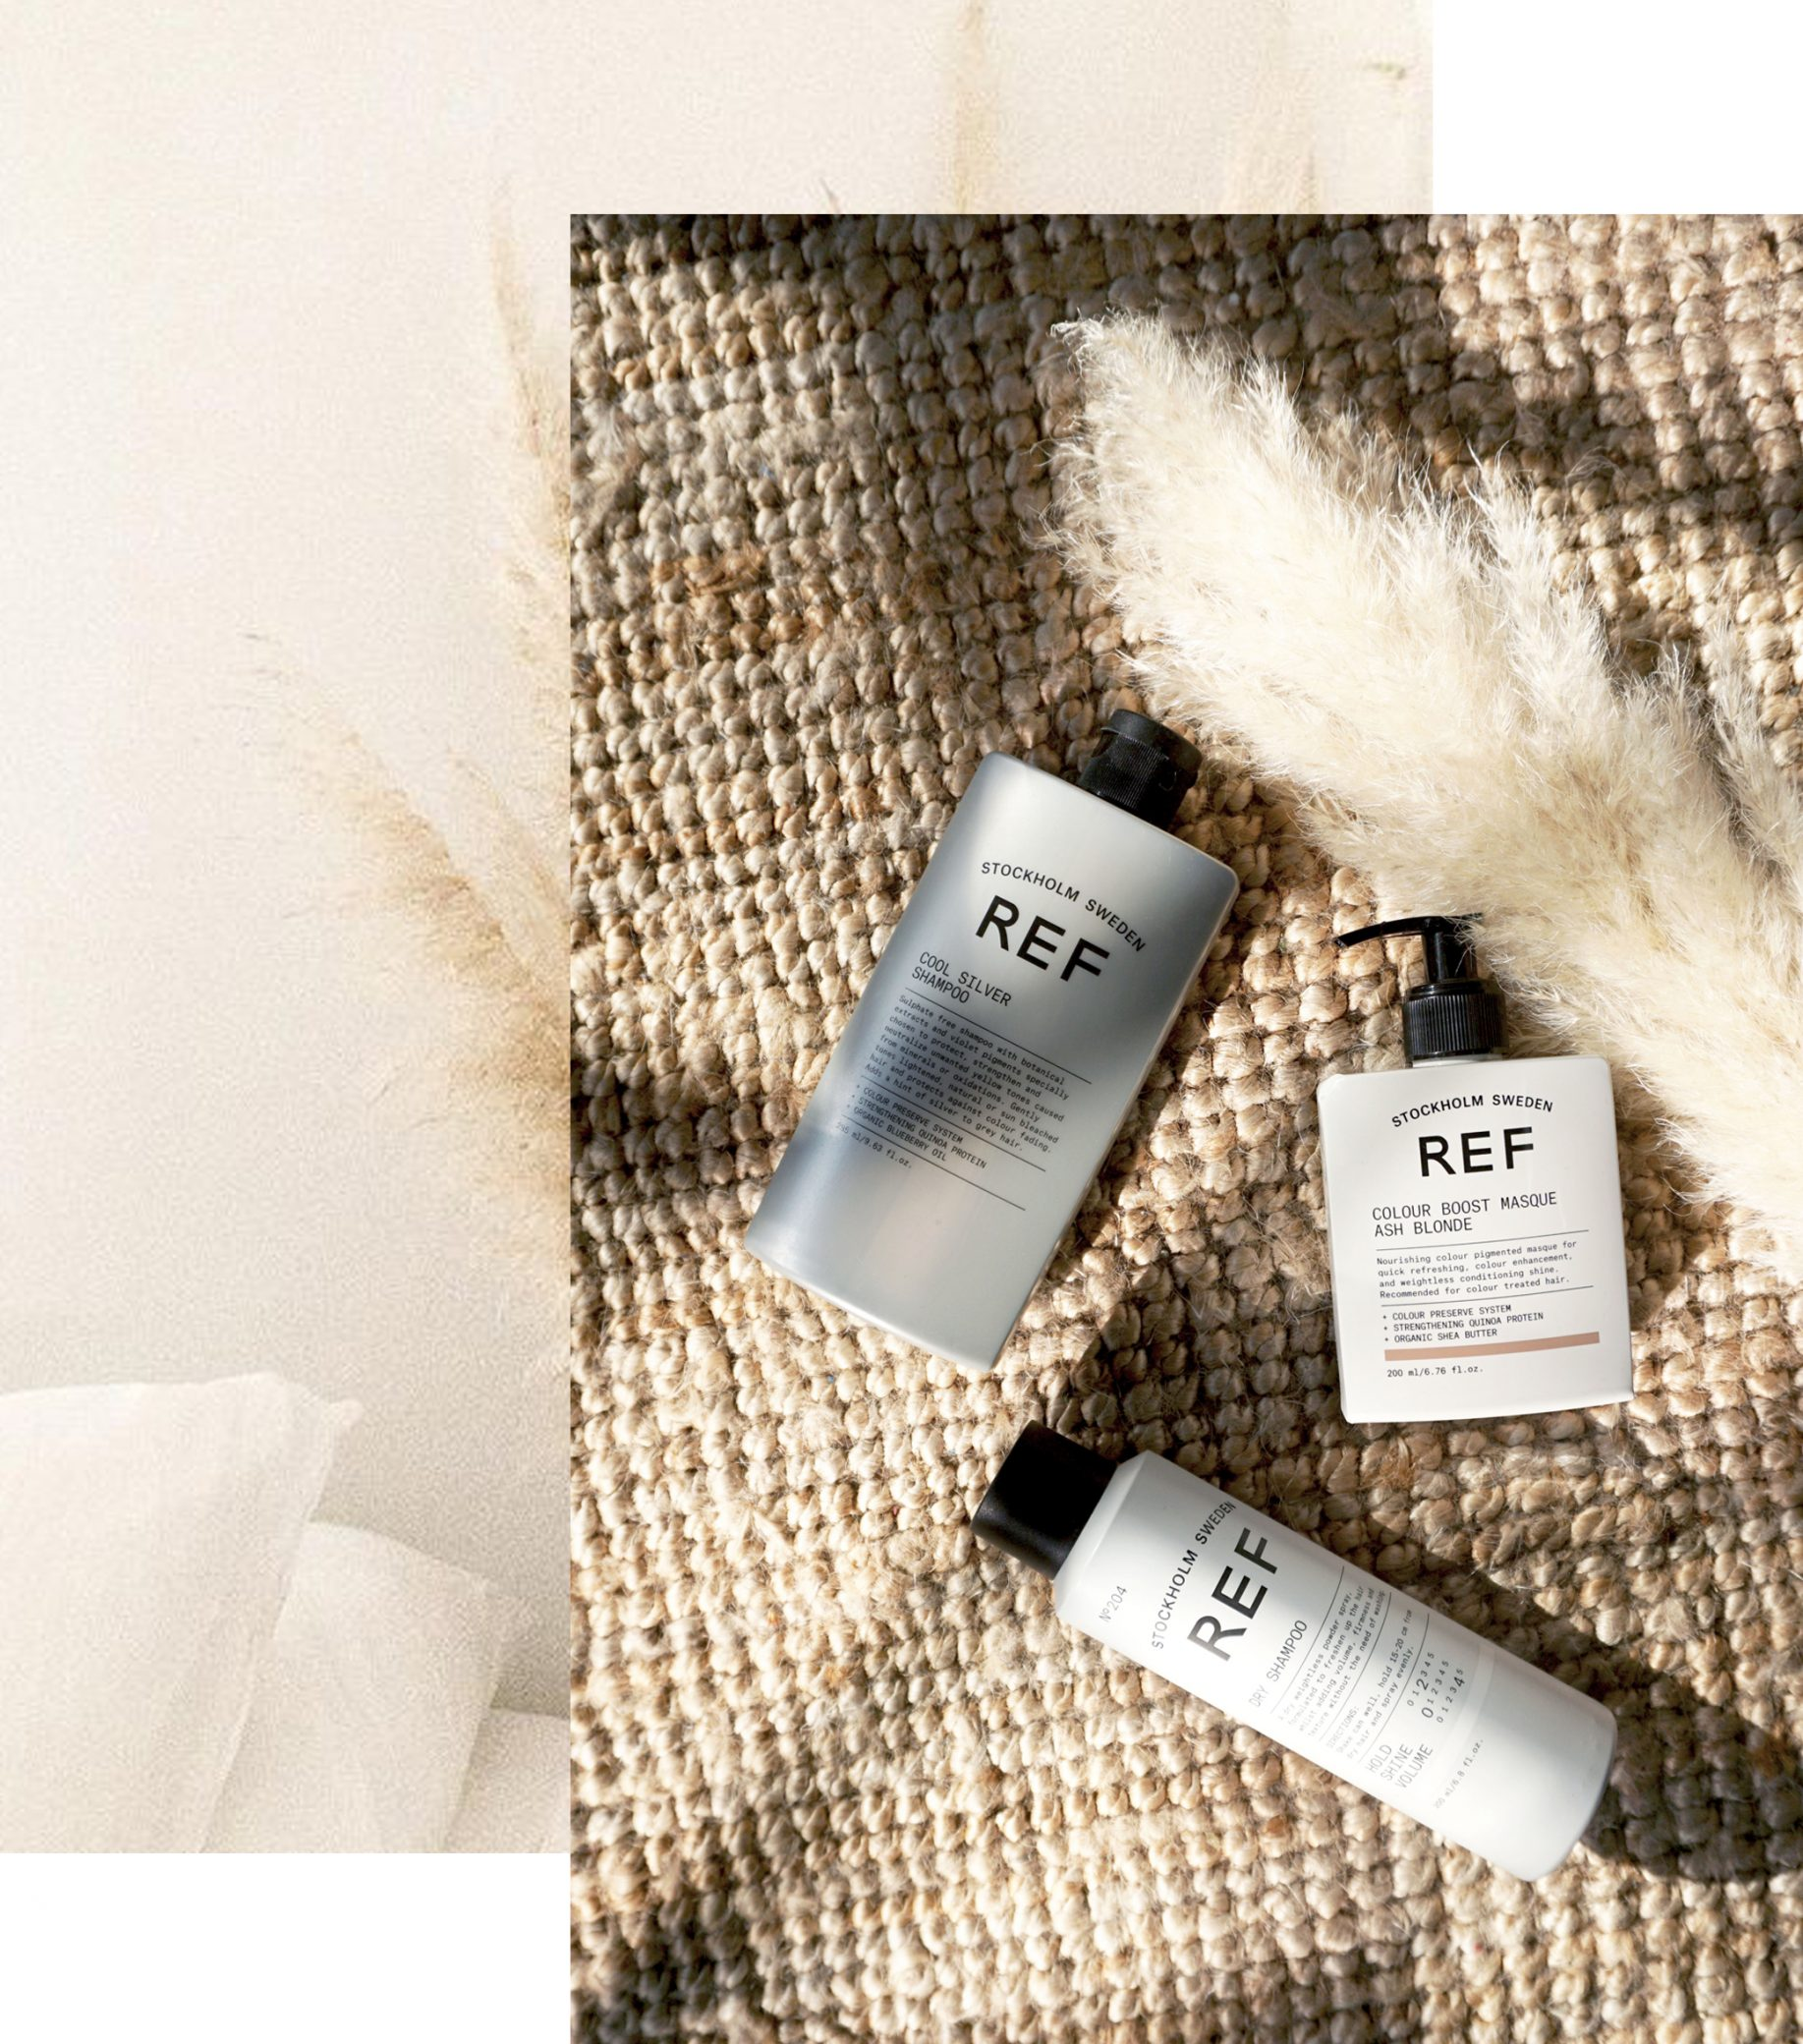 REF Stockholm - Silver Care Shampoo, Ash Blonde Hair Mask, Dry Shampoo